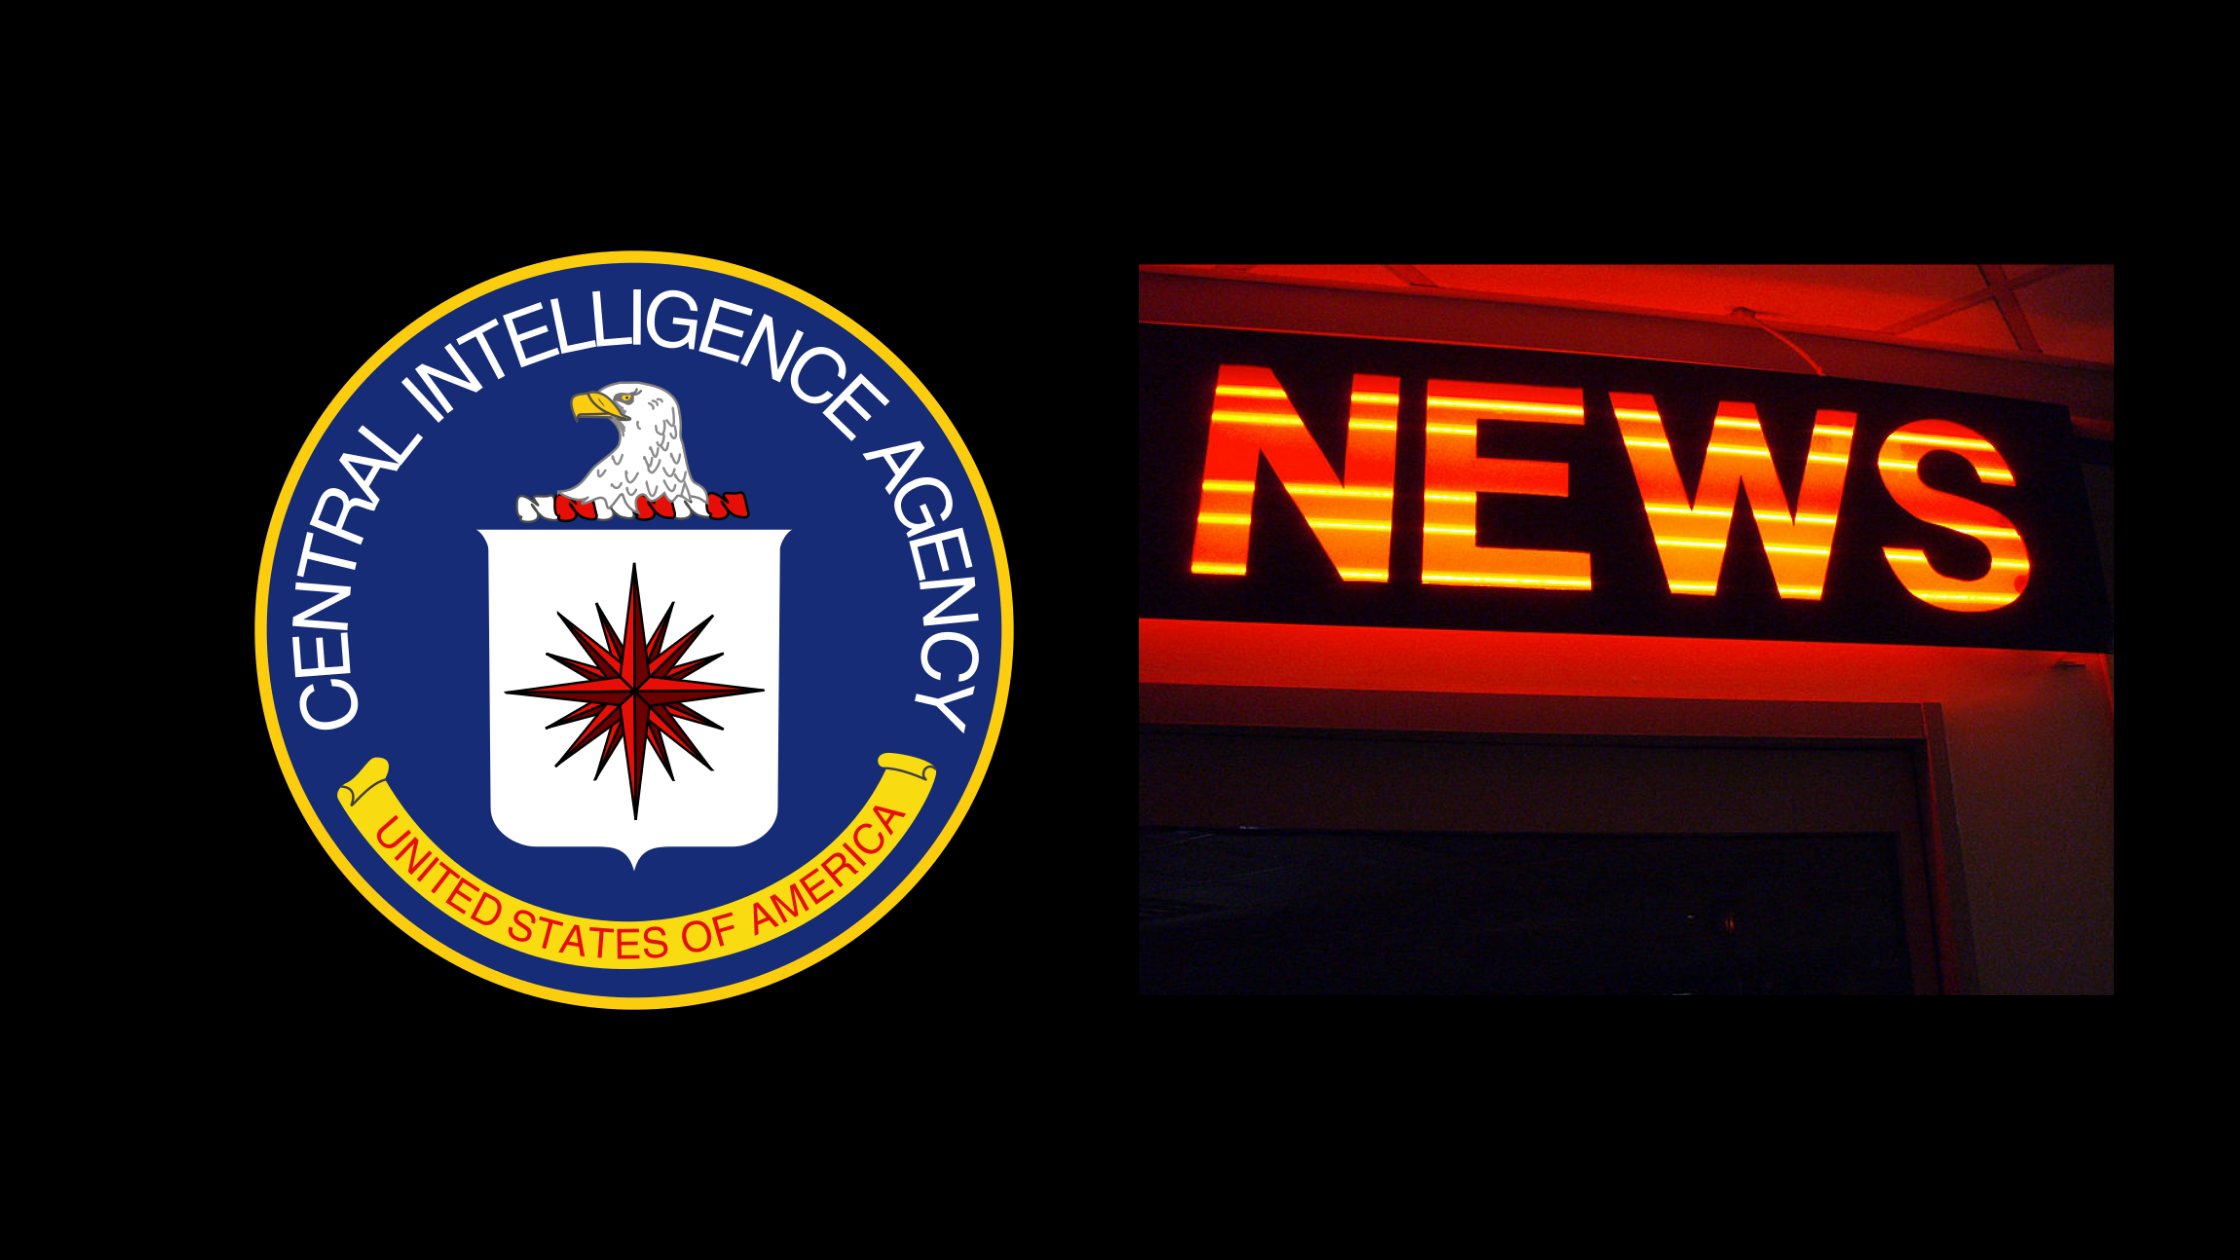 How The CIA Controls Catholic News Organizations